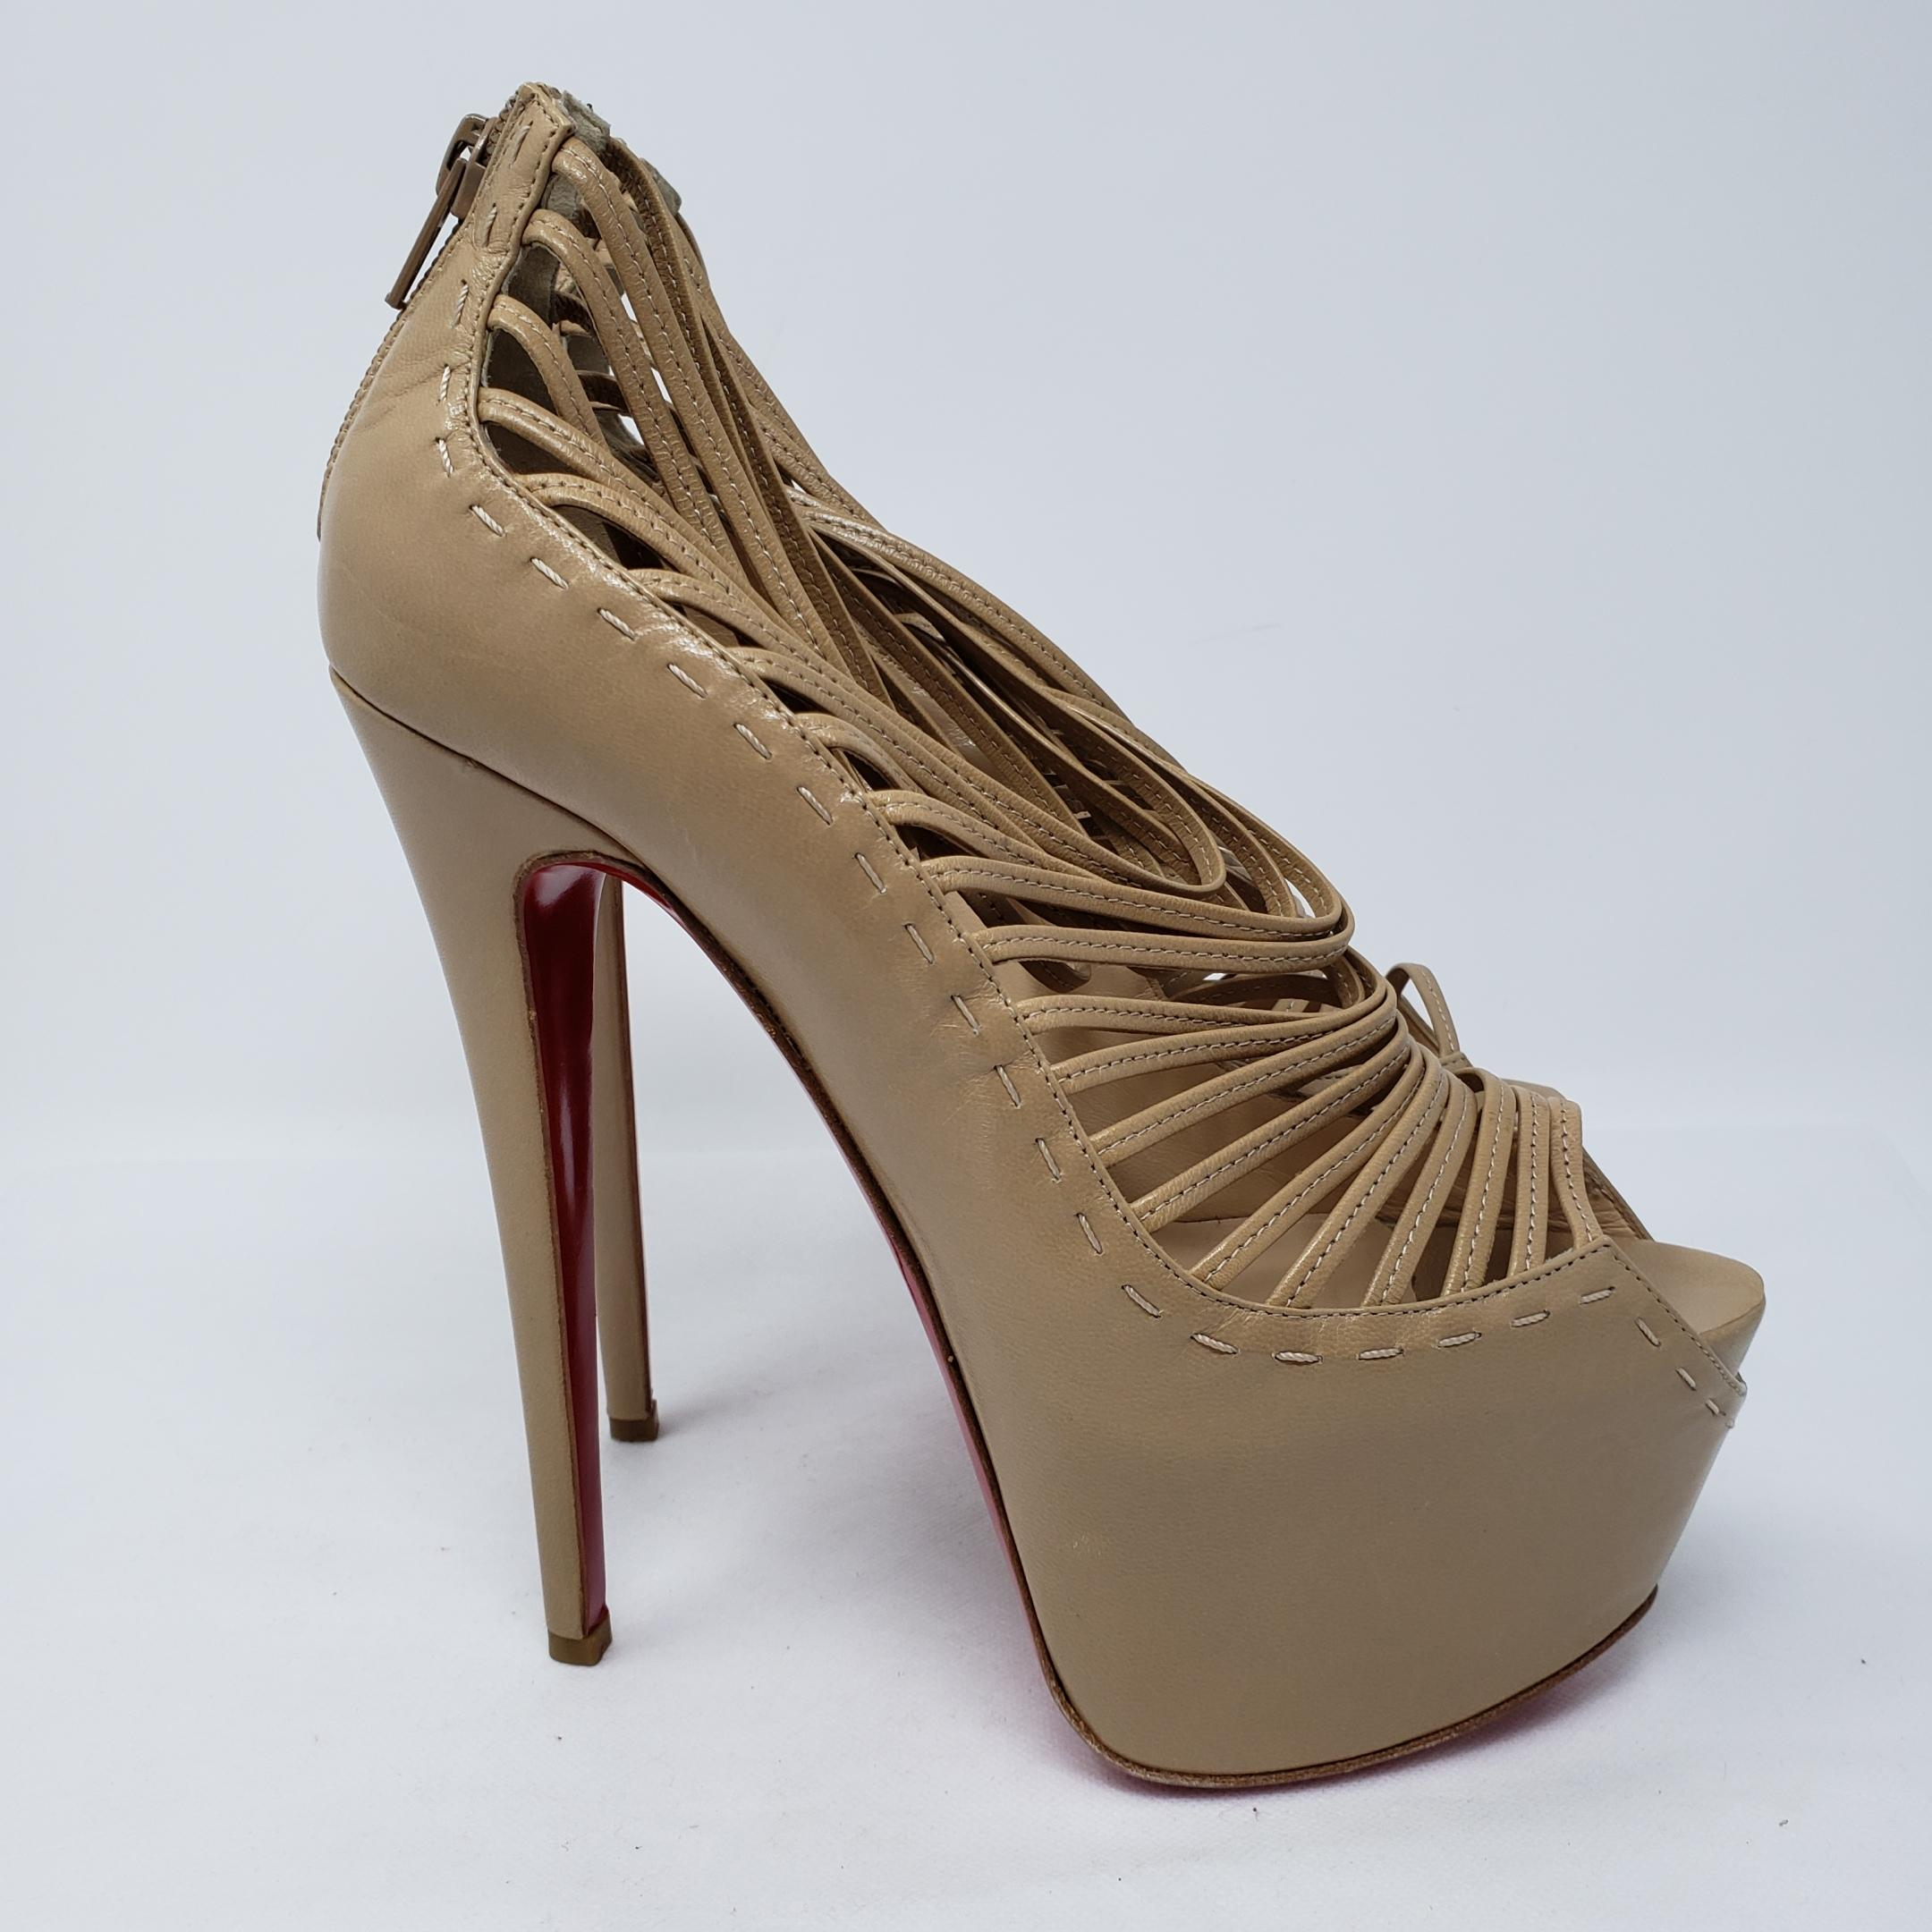 b8d3f29da96 50% off christian louboutin cage platform peep toe ankle zoulou beige boots  0b7e4 a270a